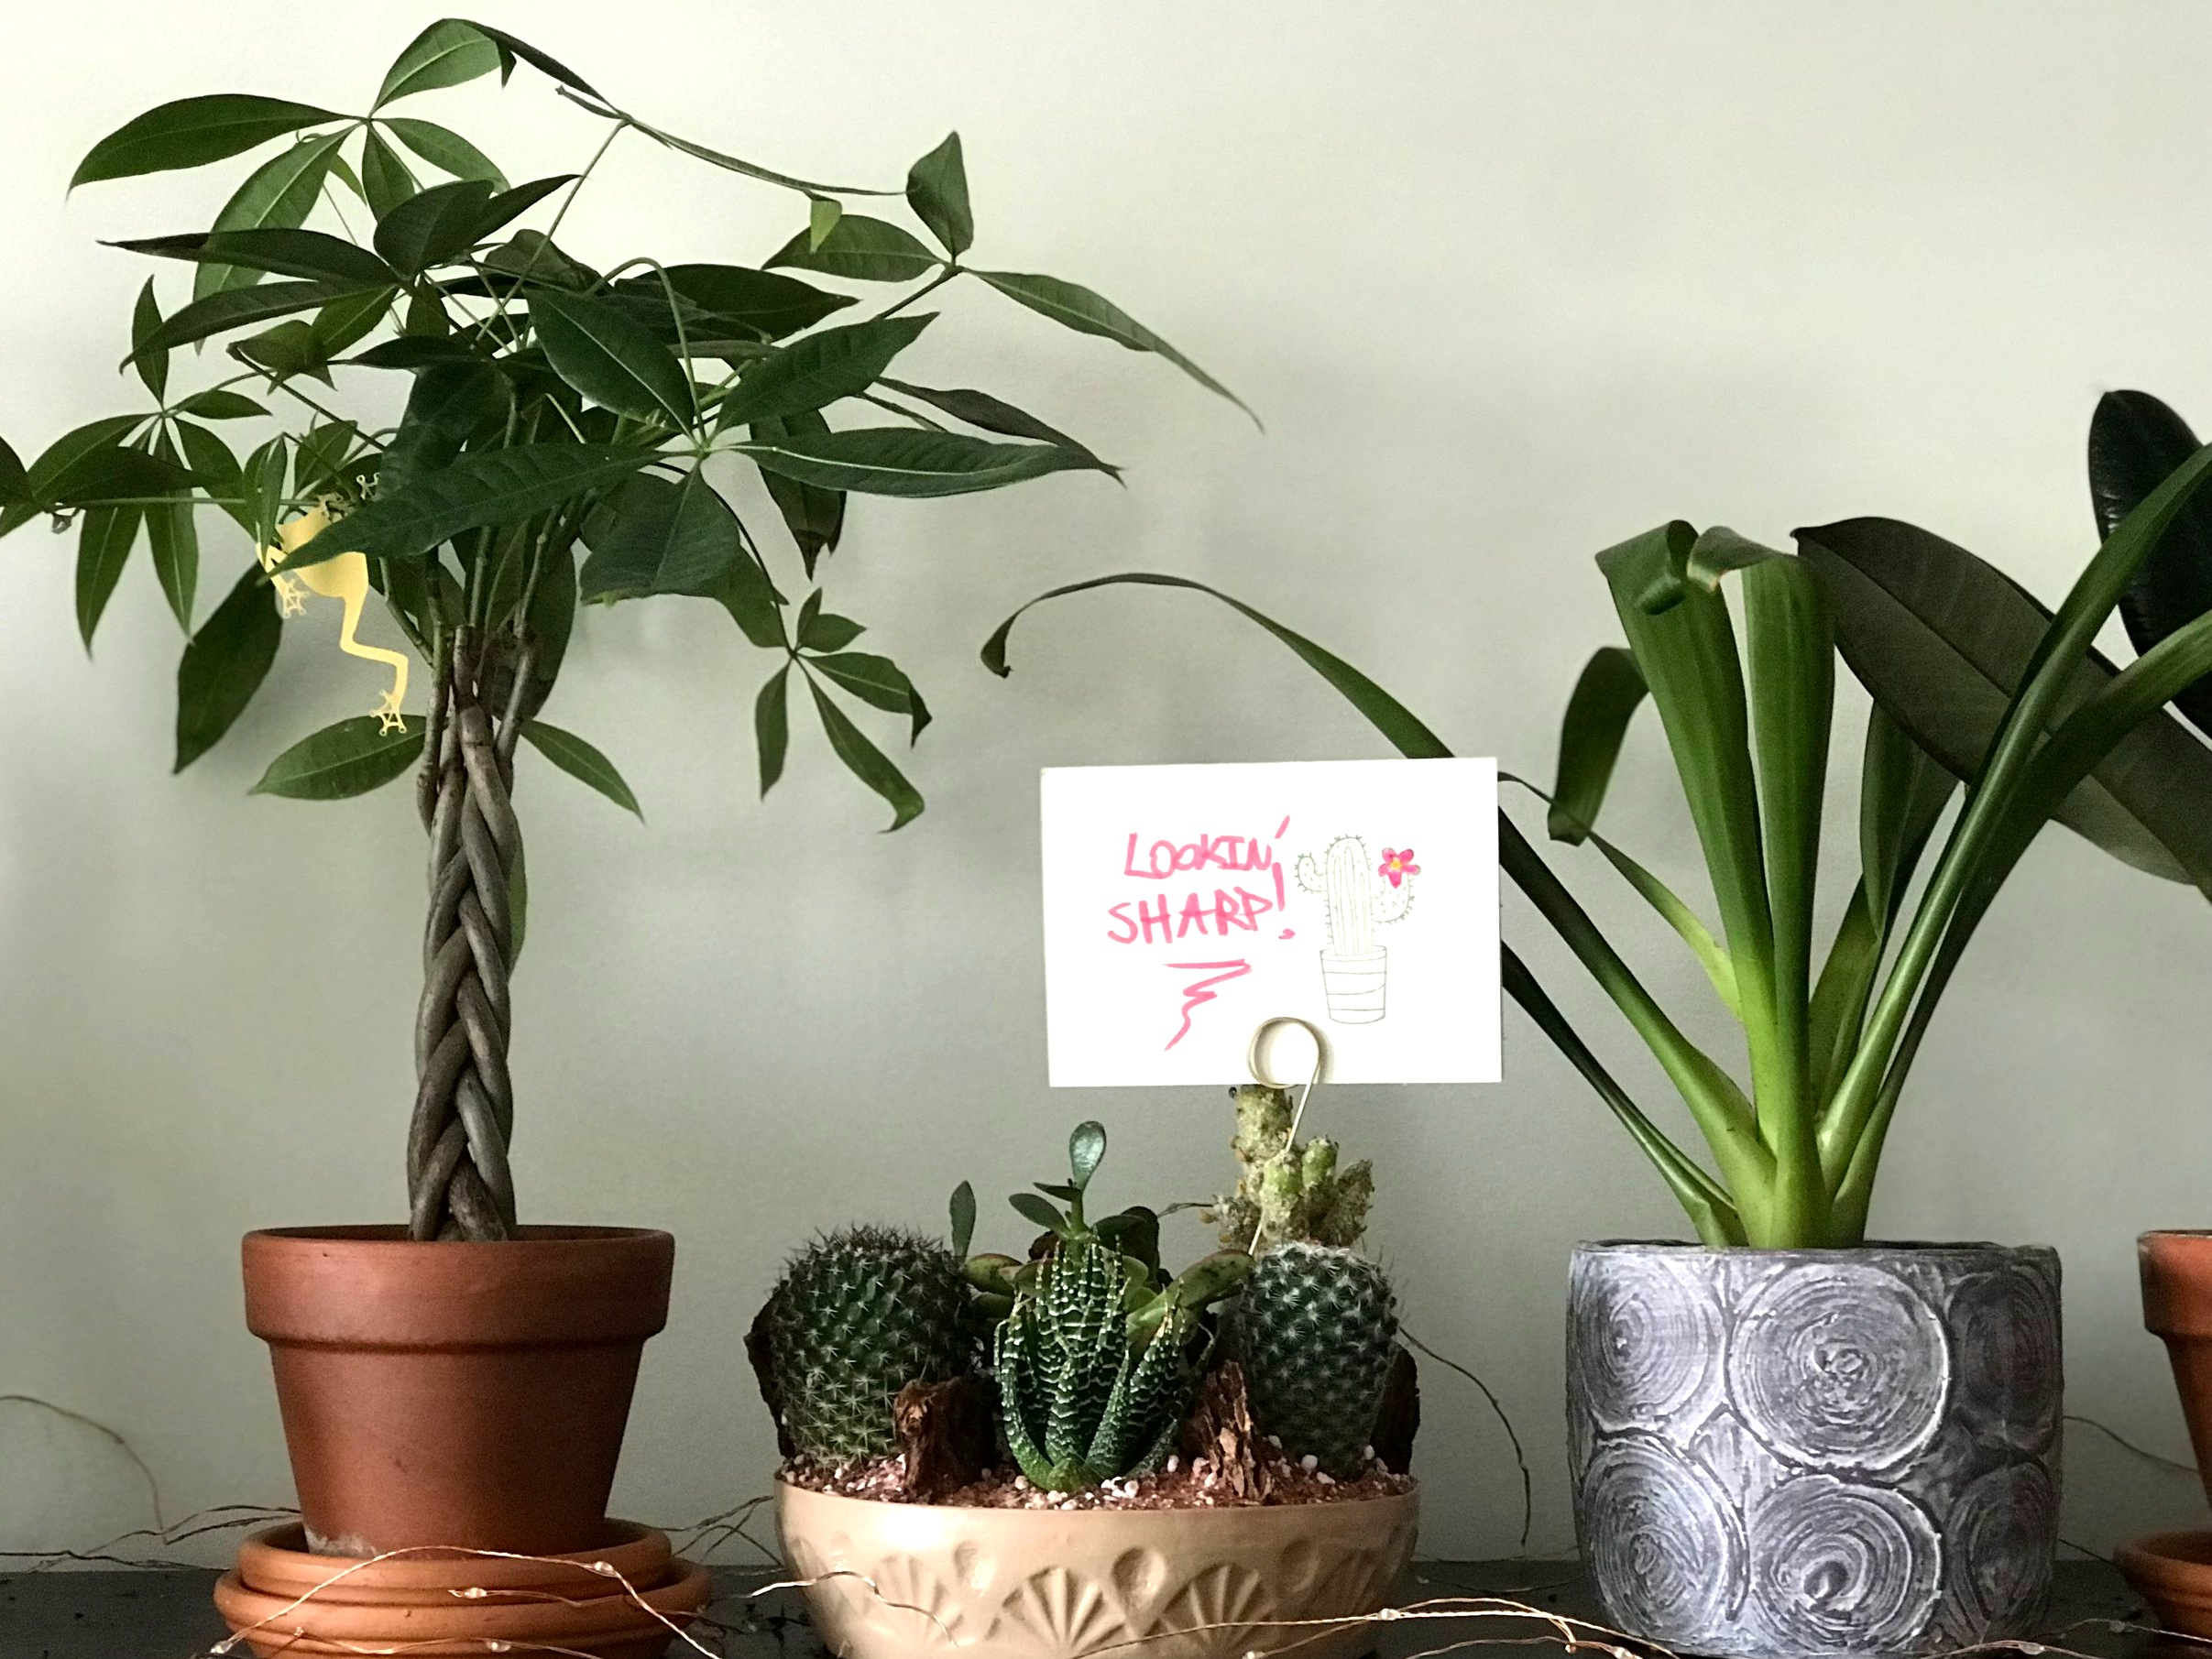 I love my cute monkey charm in my money plant, and I love to show my cacti gang some love!